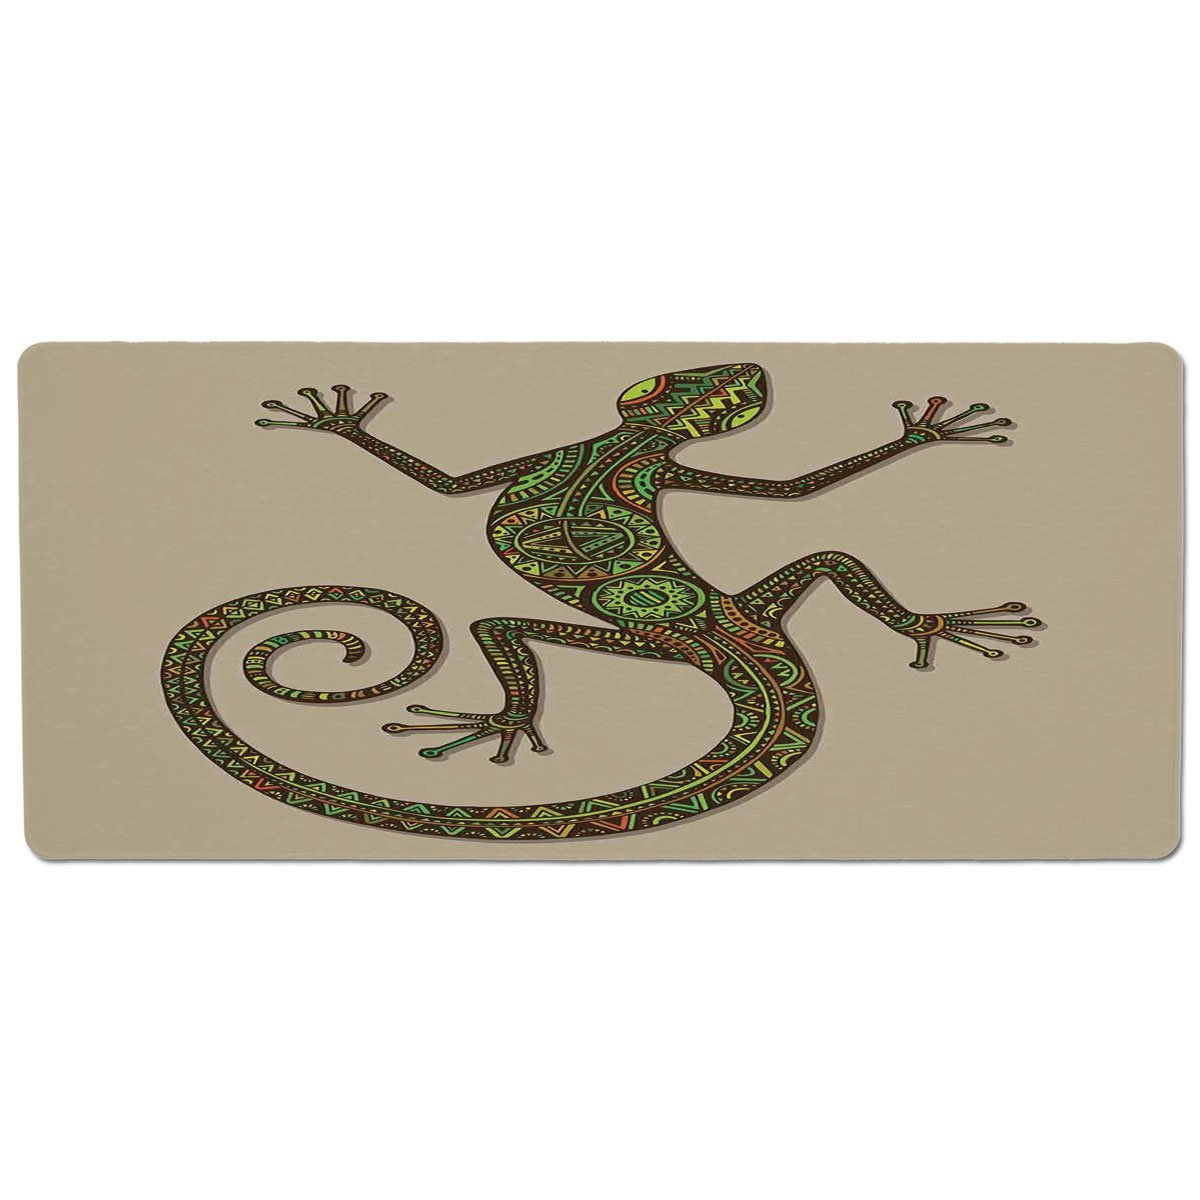 35.4\ iPrint Pet Mat for Food and Water,Reptiles,Ornamental colorful Lizard with Ethnic Patterns Moving Around Exotic Creature Decor,Green Ecru,Rectangle Non-Slip Rubber Mat for Dogs and Cats